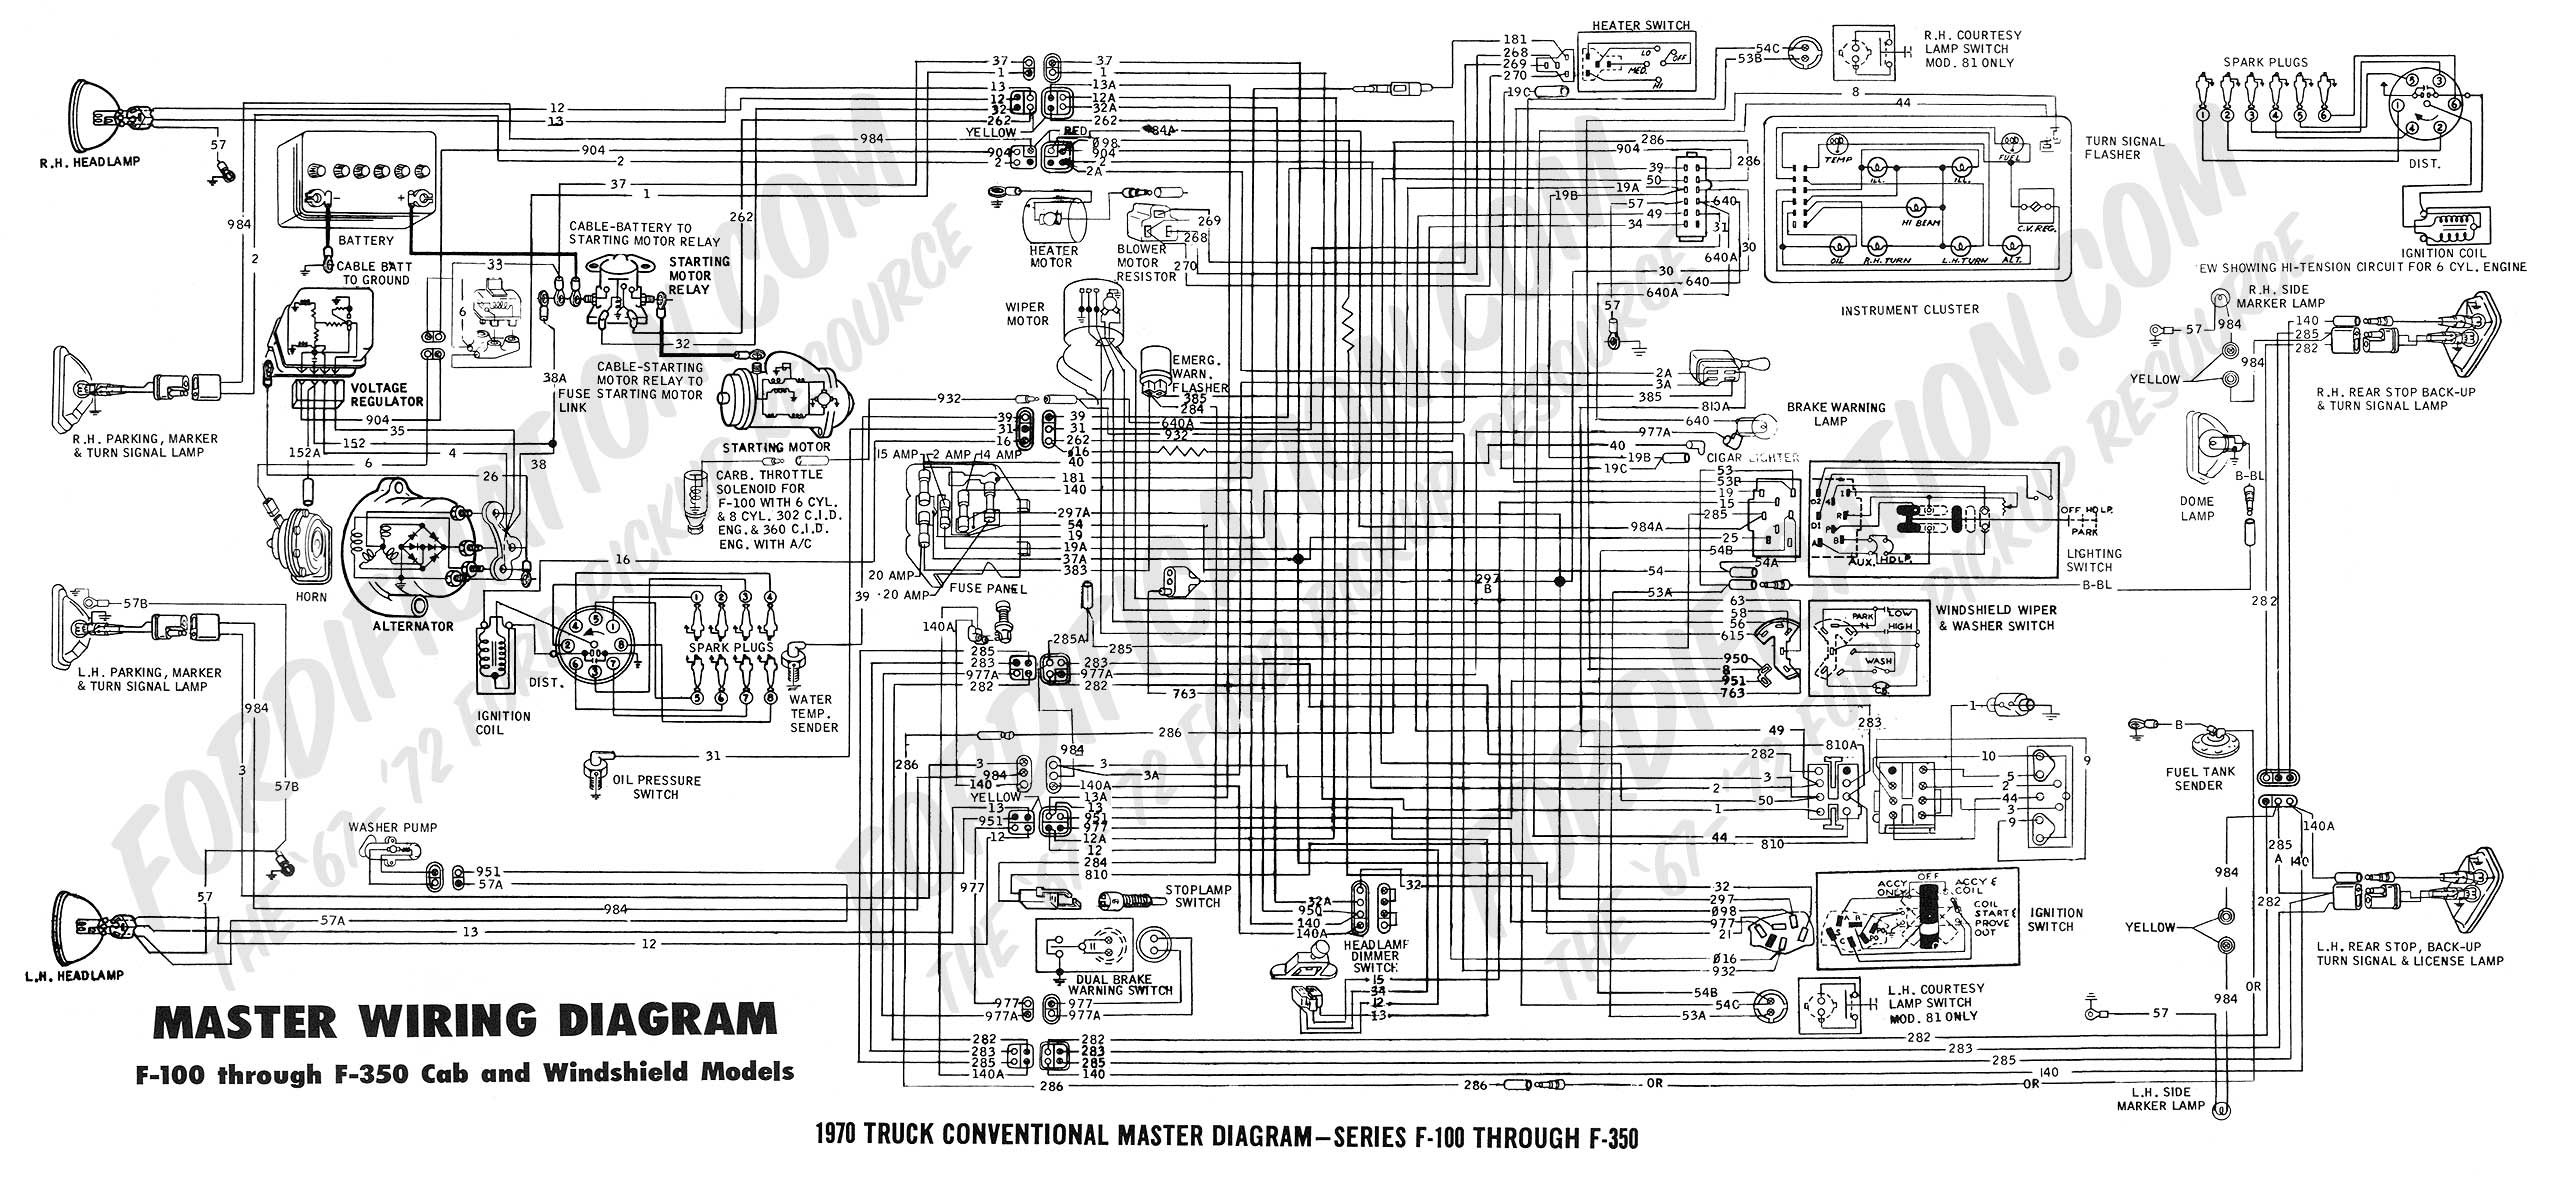 Ford F600 Truck Wiring Diagrams Diagram Libraries Jubilee Tractor 1989 Todays1989 Schematic 1953